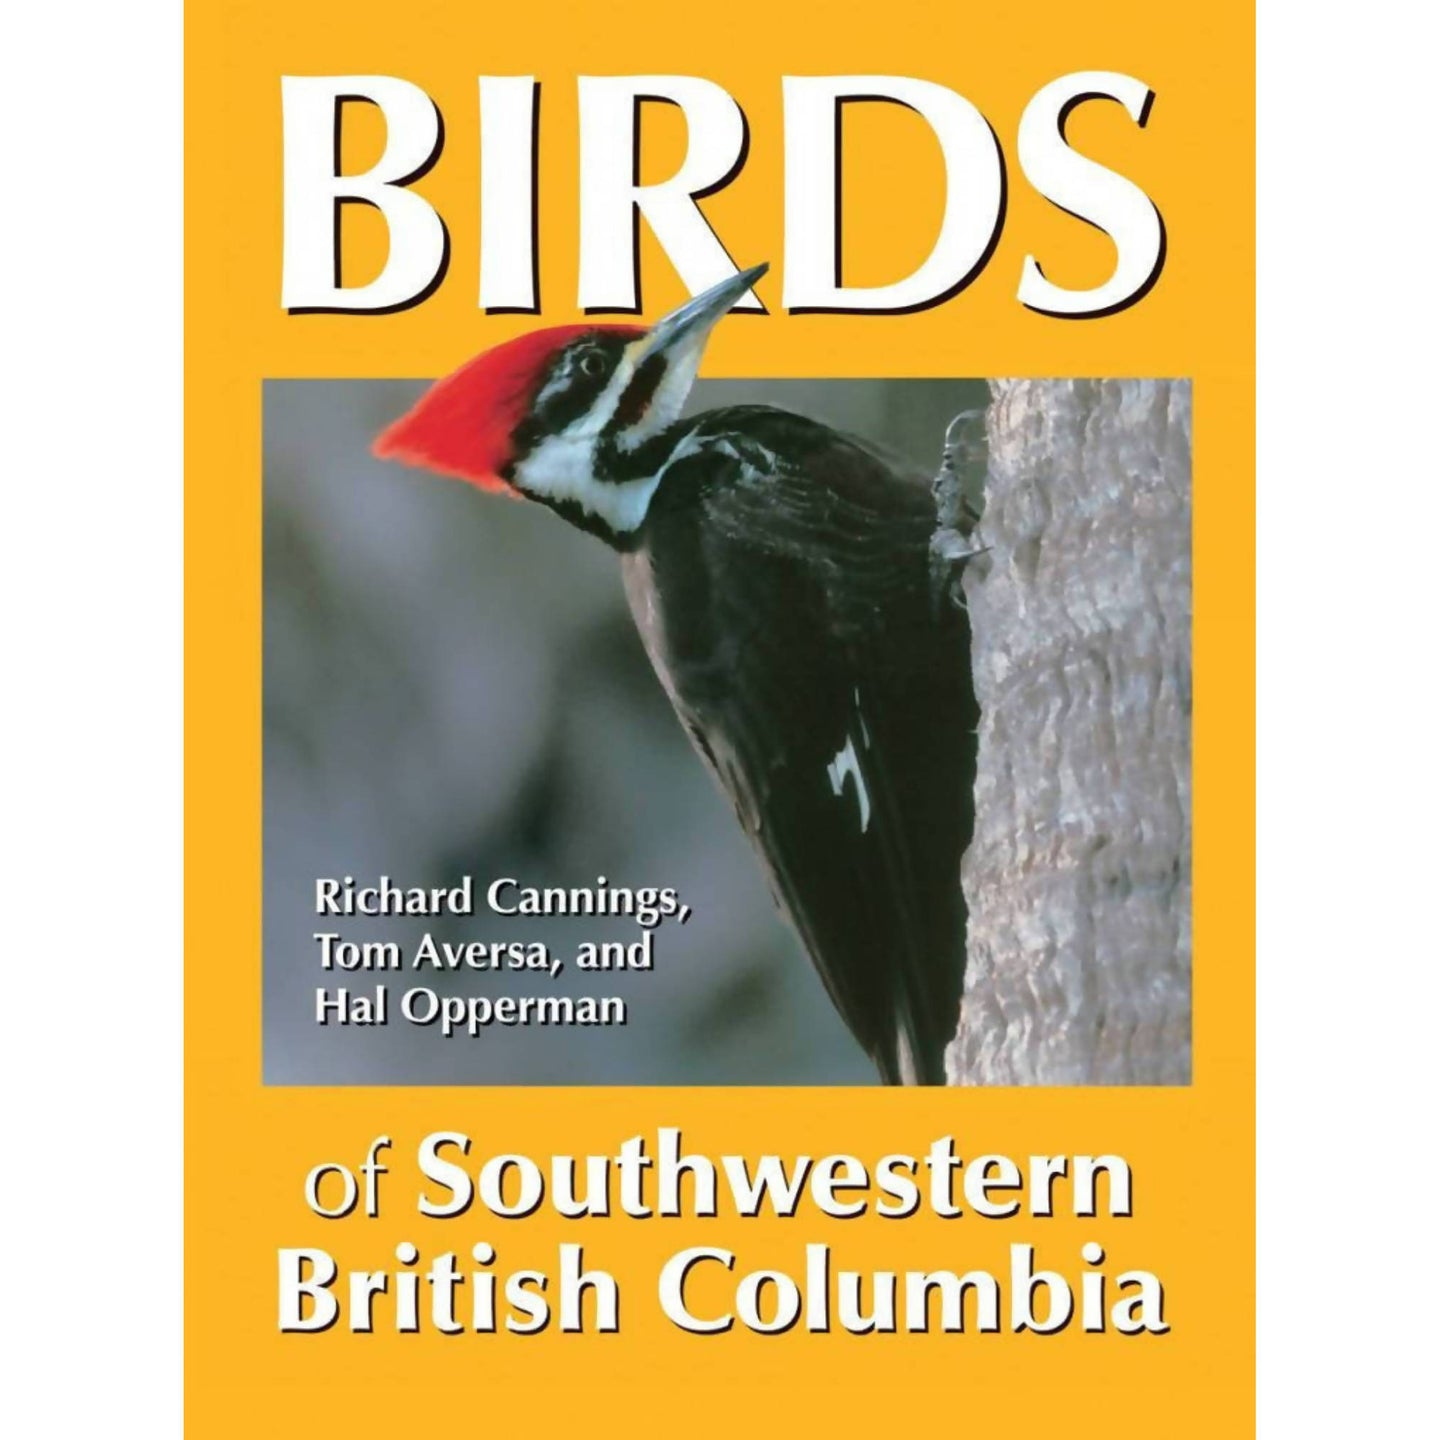 Birds of Southwestern British Columbia Field Guide